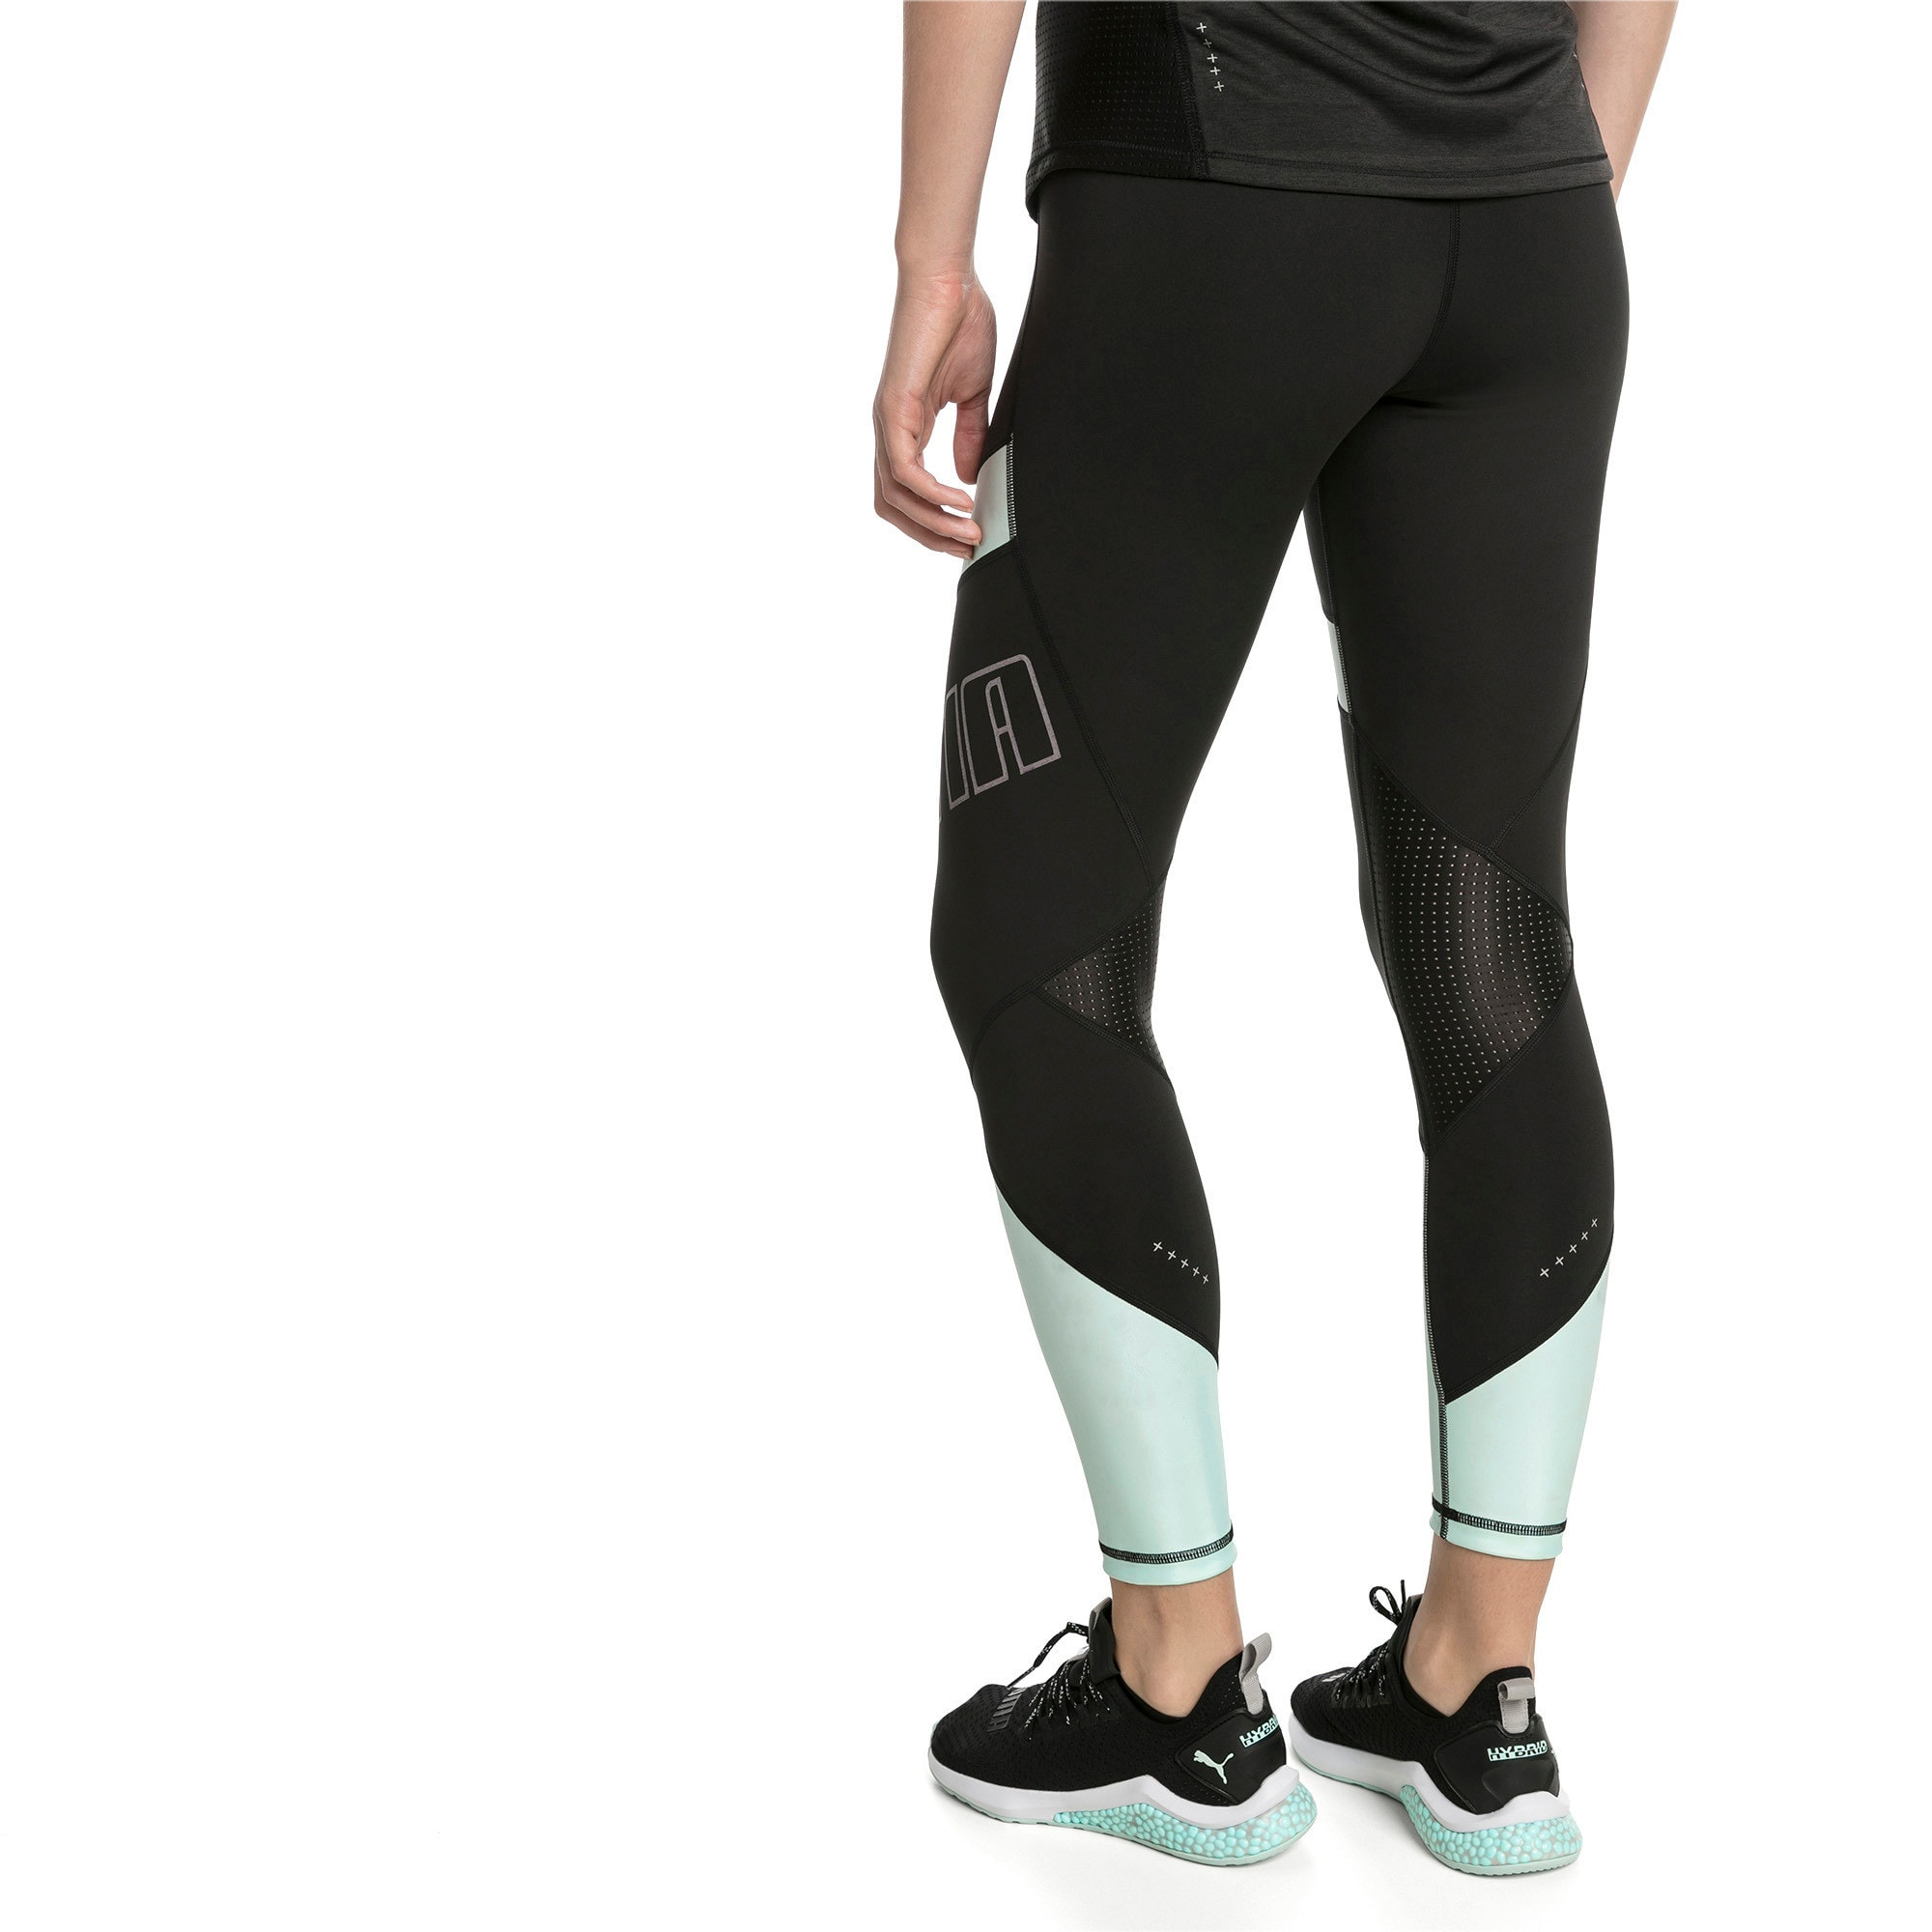 Thumbnail 2 of Elite Women's Running Leggings, Puma Black-Fair Aqua, medium-SEA